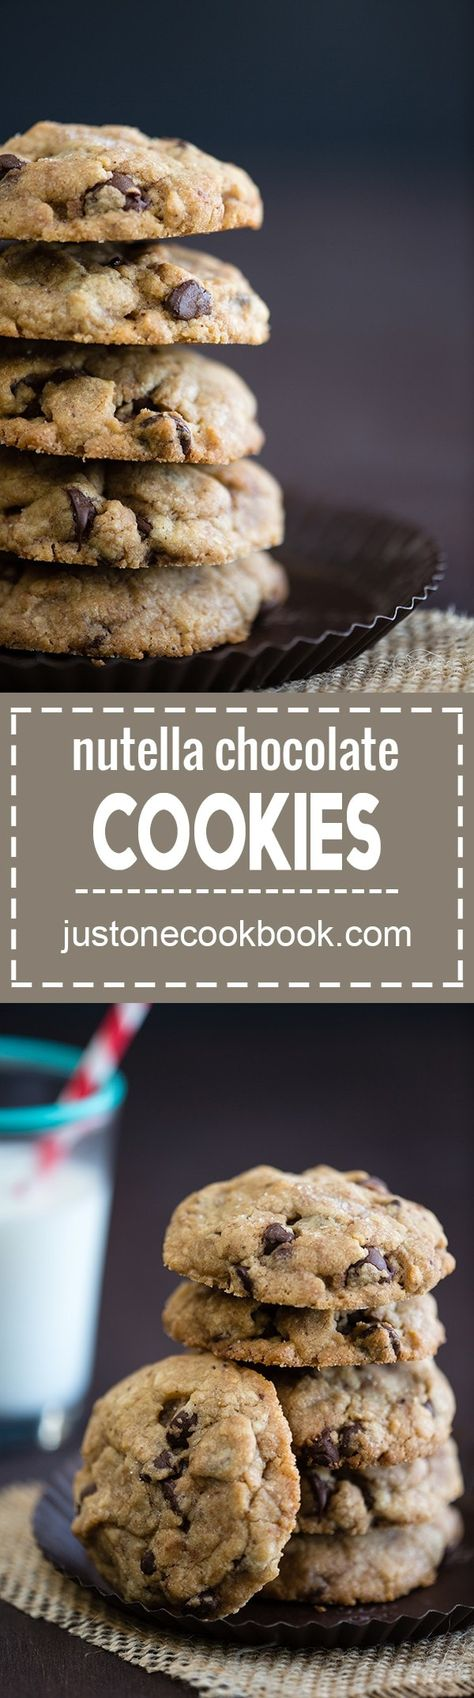 Chocolate Chip Cookies with Nutella - Best chocolate chip cookie recipe ever! Made with brown butter, stuffed with Nutella, and sprinkled with sea salt. #cookierecipes #chocolatechipcookies #saltedchocolatechipcookies #brownbutterchocolatechipcookies #nutellastuffedcookies #chocochipcookiesrecipe | Easy Japanese Recipes at JustOneCookbook.com